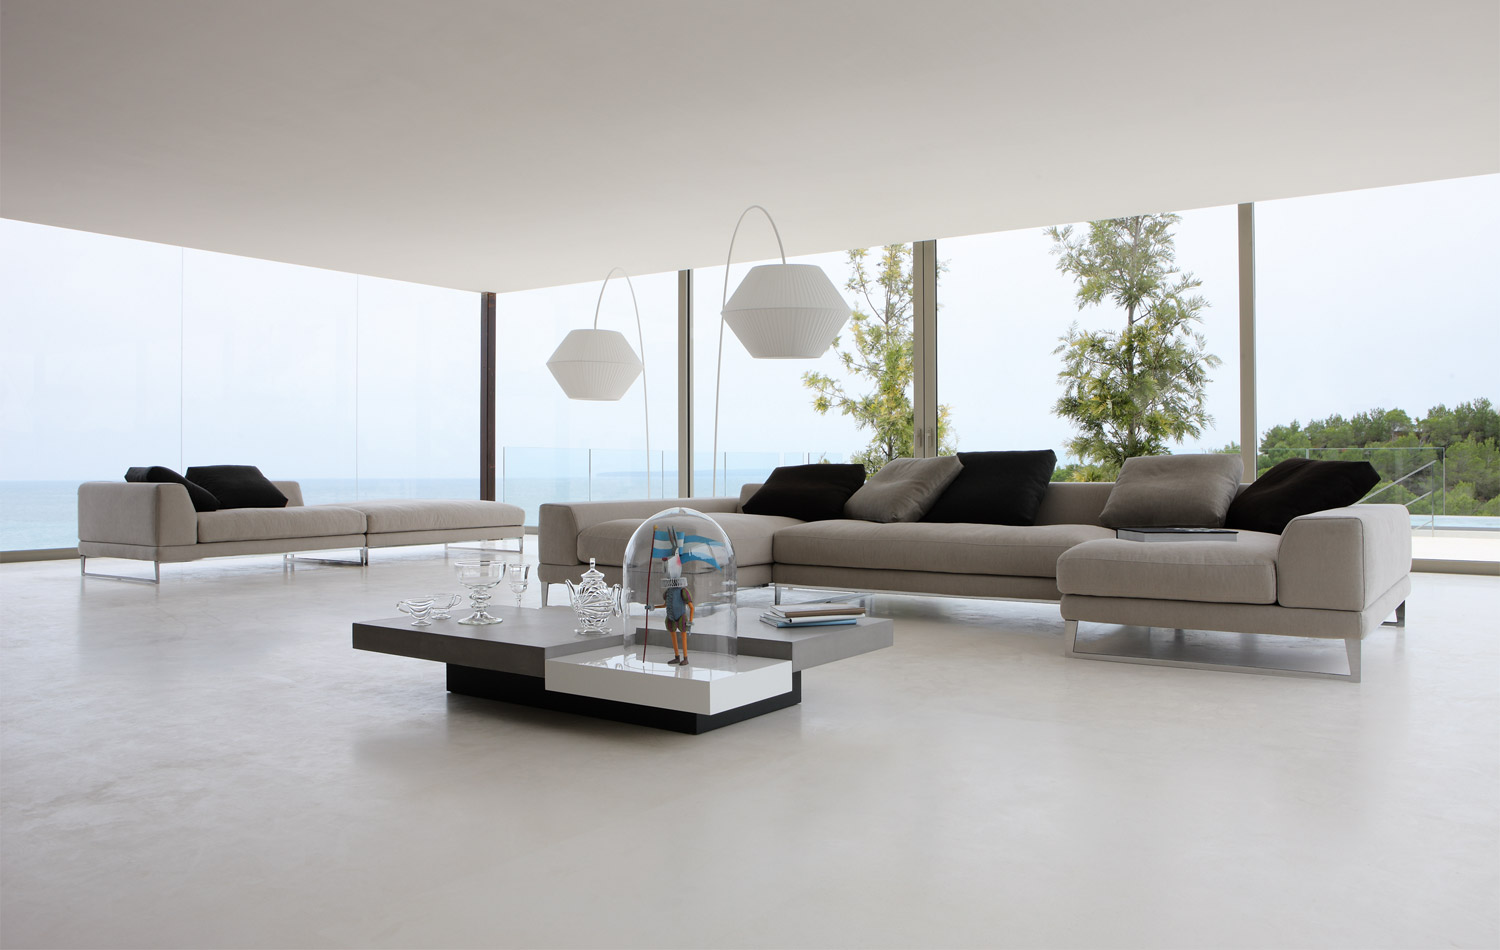 Living room inspiration 120 modern sofas by roche bobois - Table basse roche bobois ...